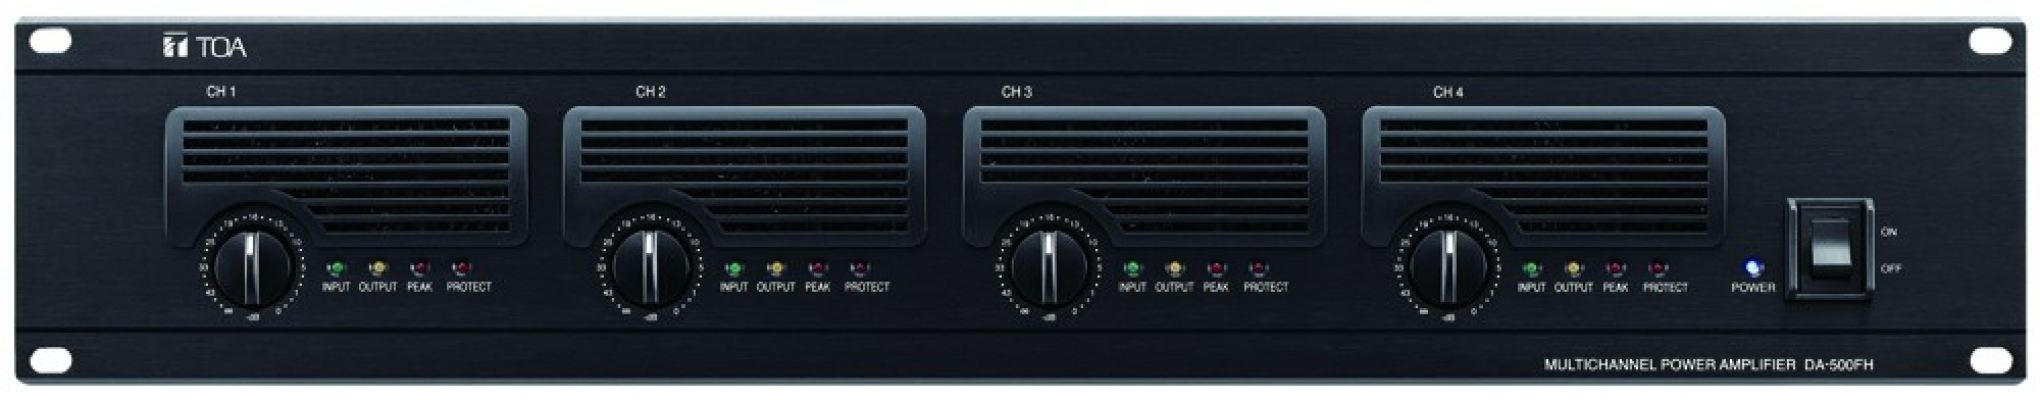 DA-500FH.Multichannel Power Amplifier